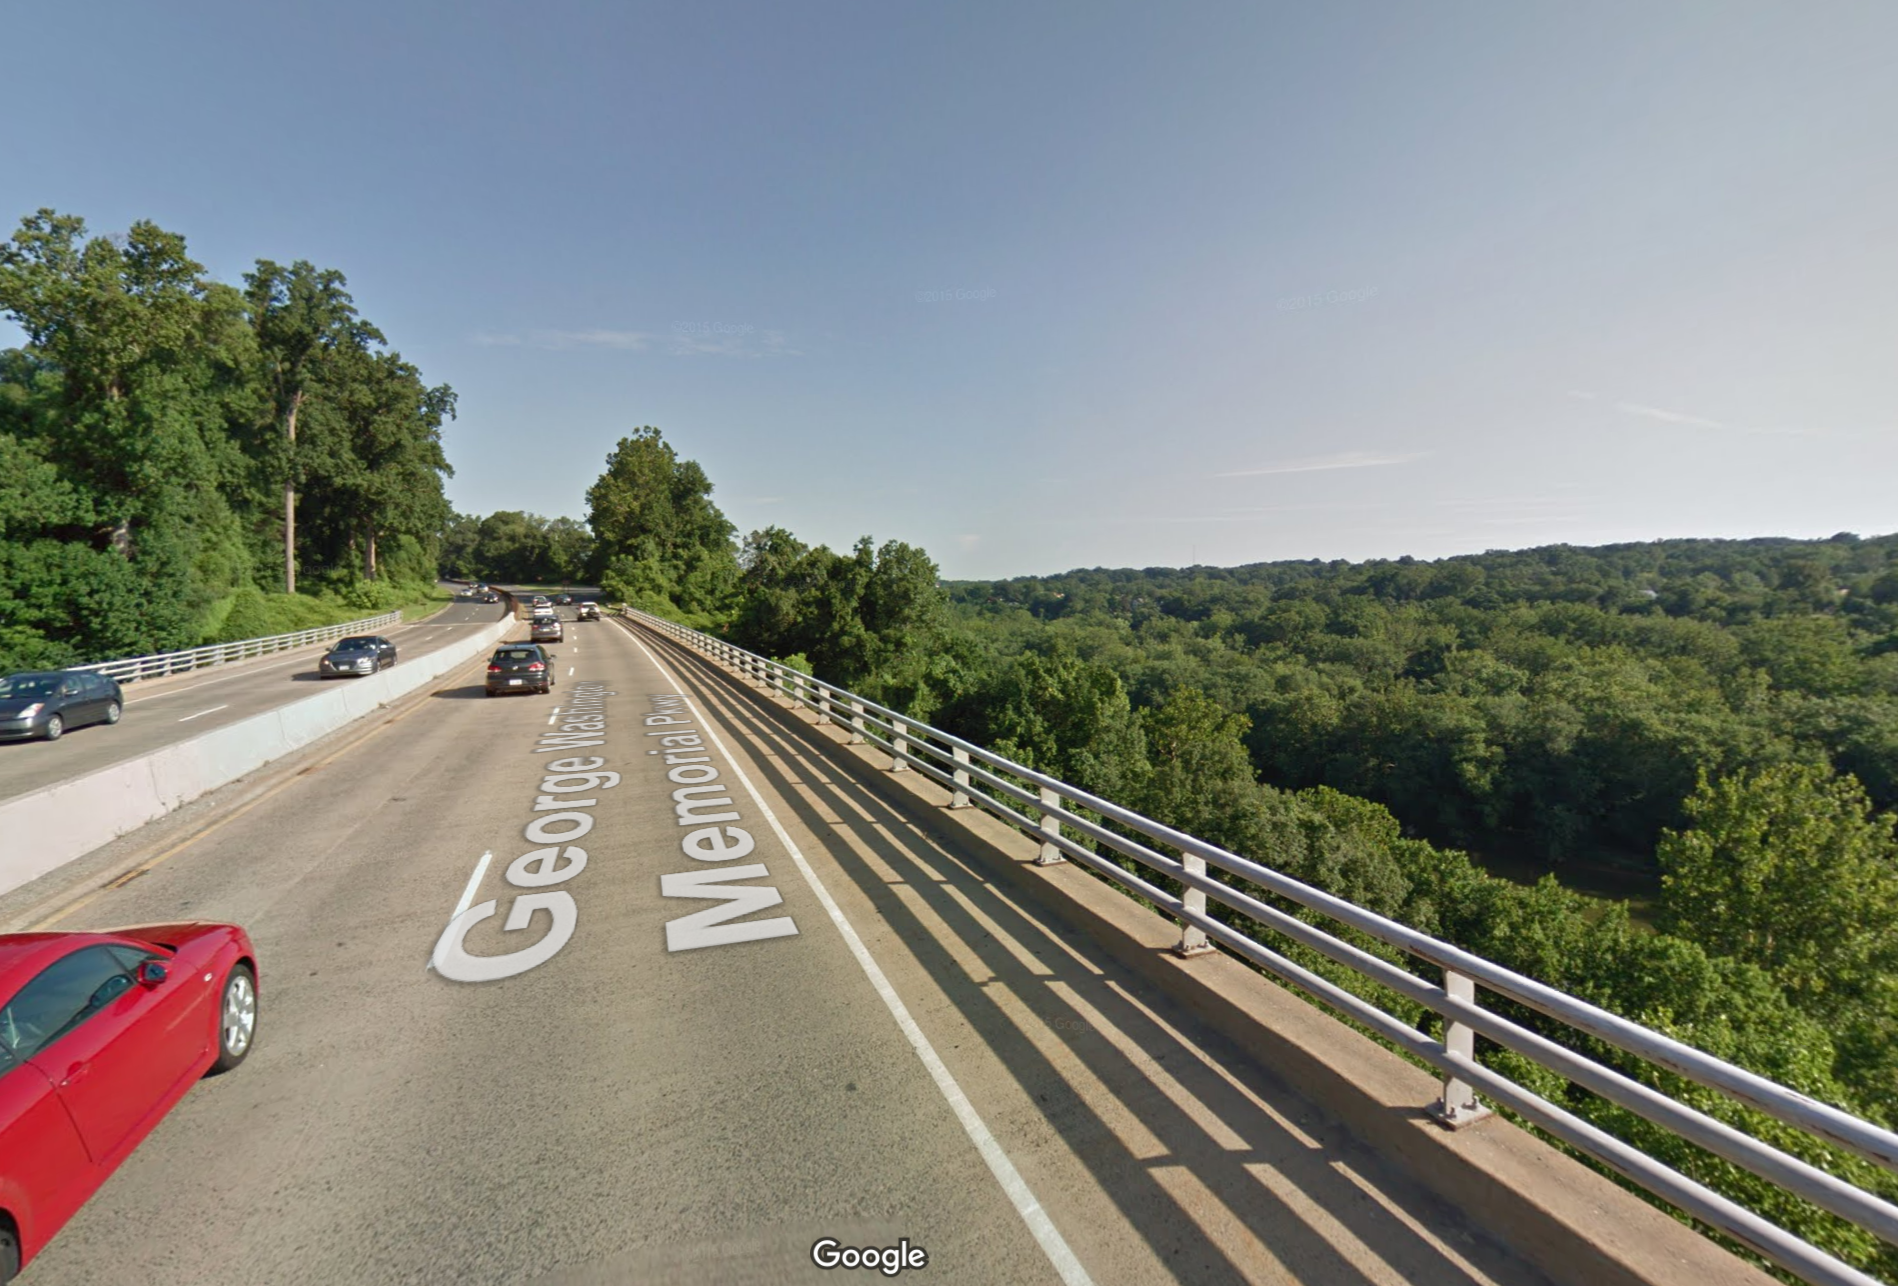 View from Virginia looking out over the Potomac Palisades. Google Streetview